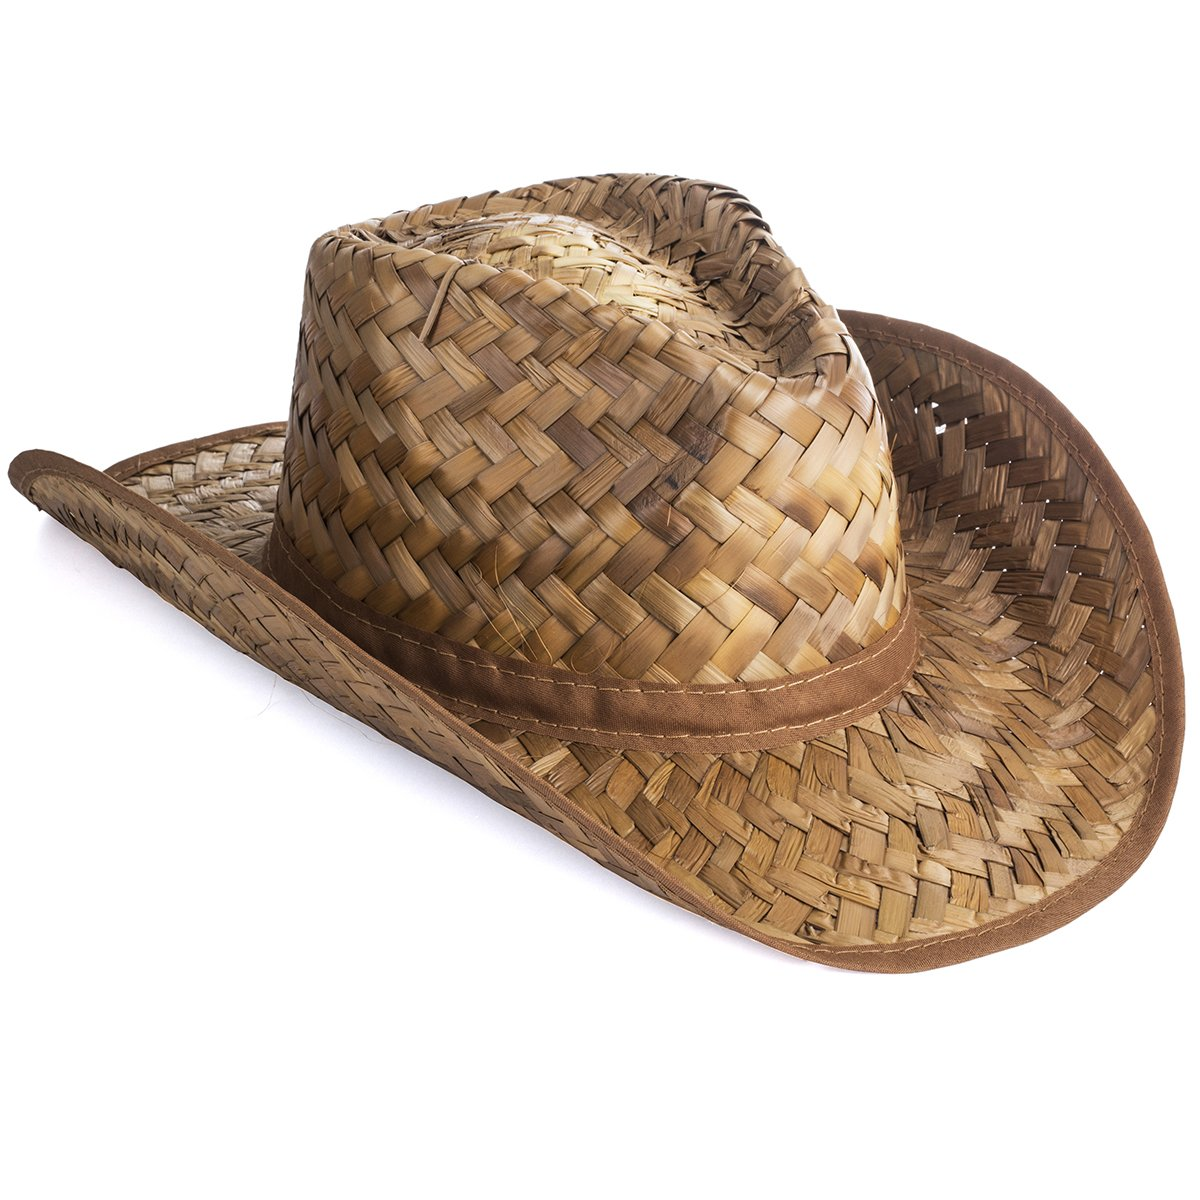 d8573eea7a7 Get Quotations · Tan Woven Straw Rolled Cowboy Hat by U.S. Toy